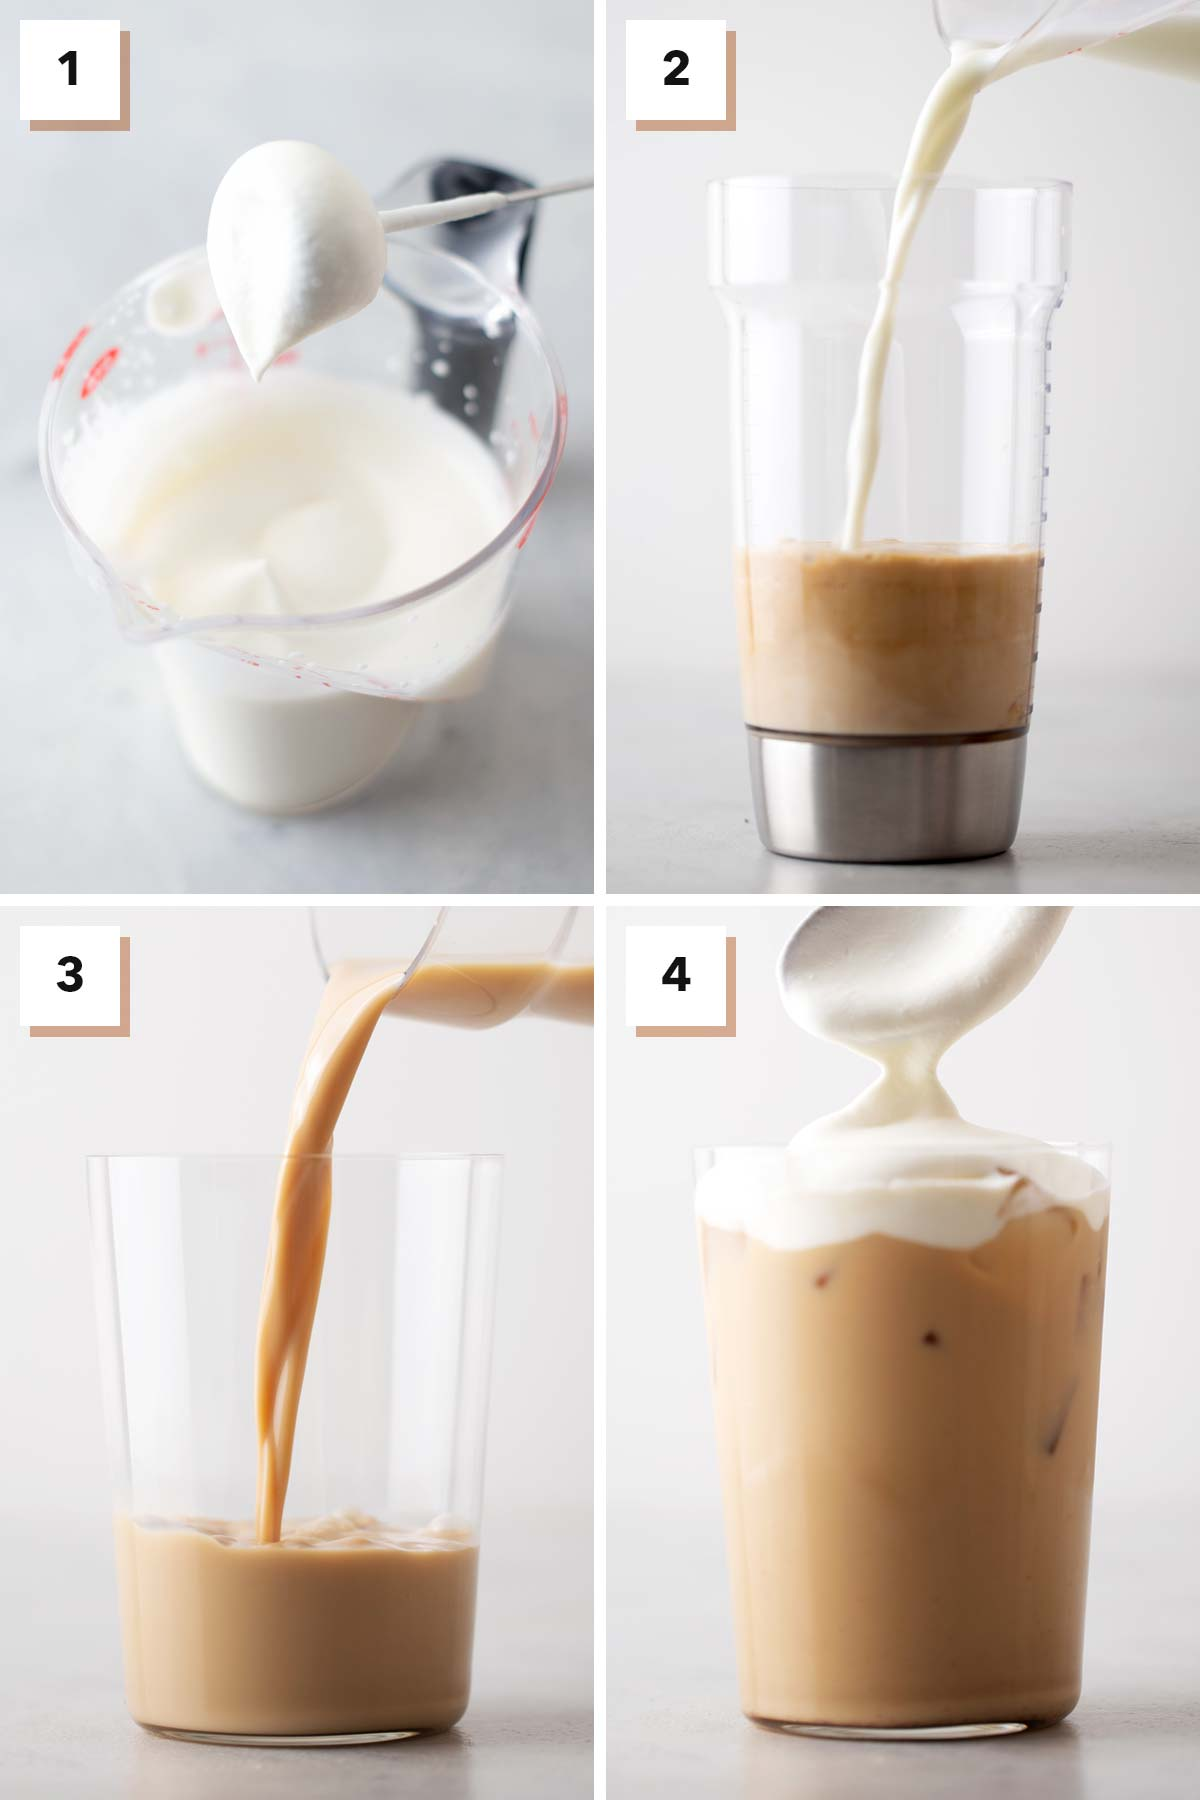 Four photo grid showing steps to make an Iced Pumpkin Spice Latte.